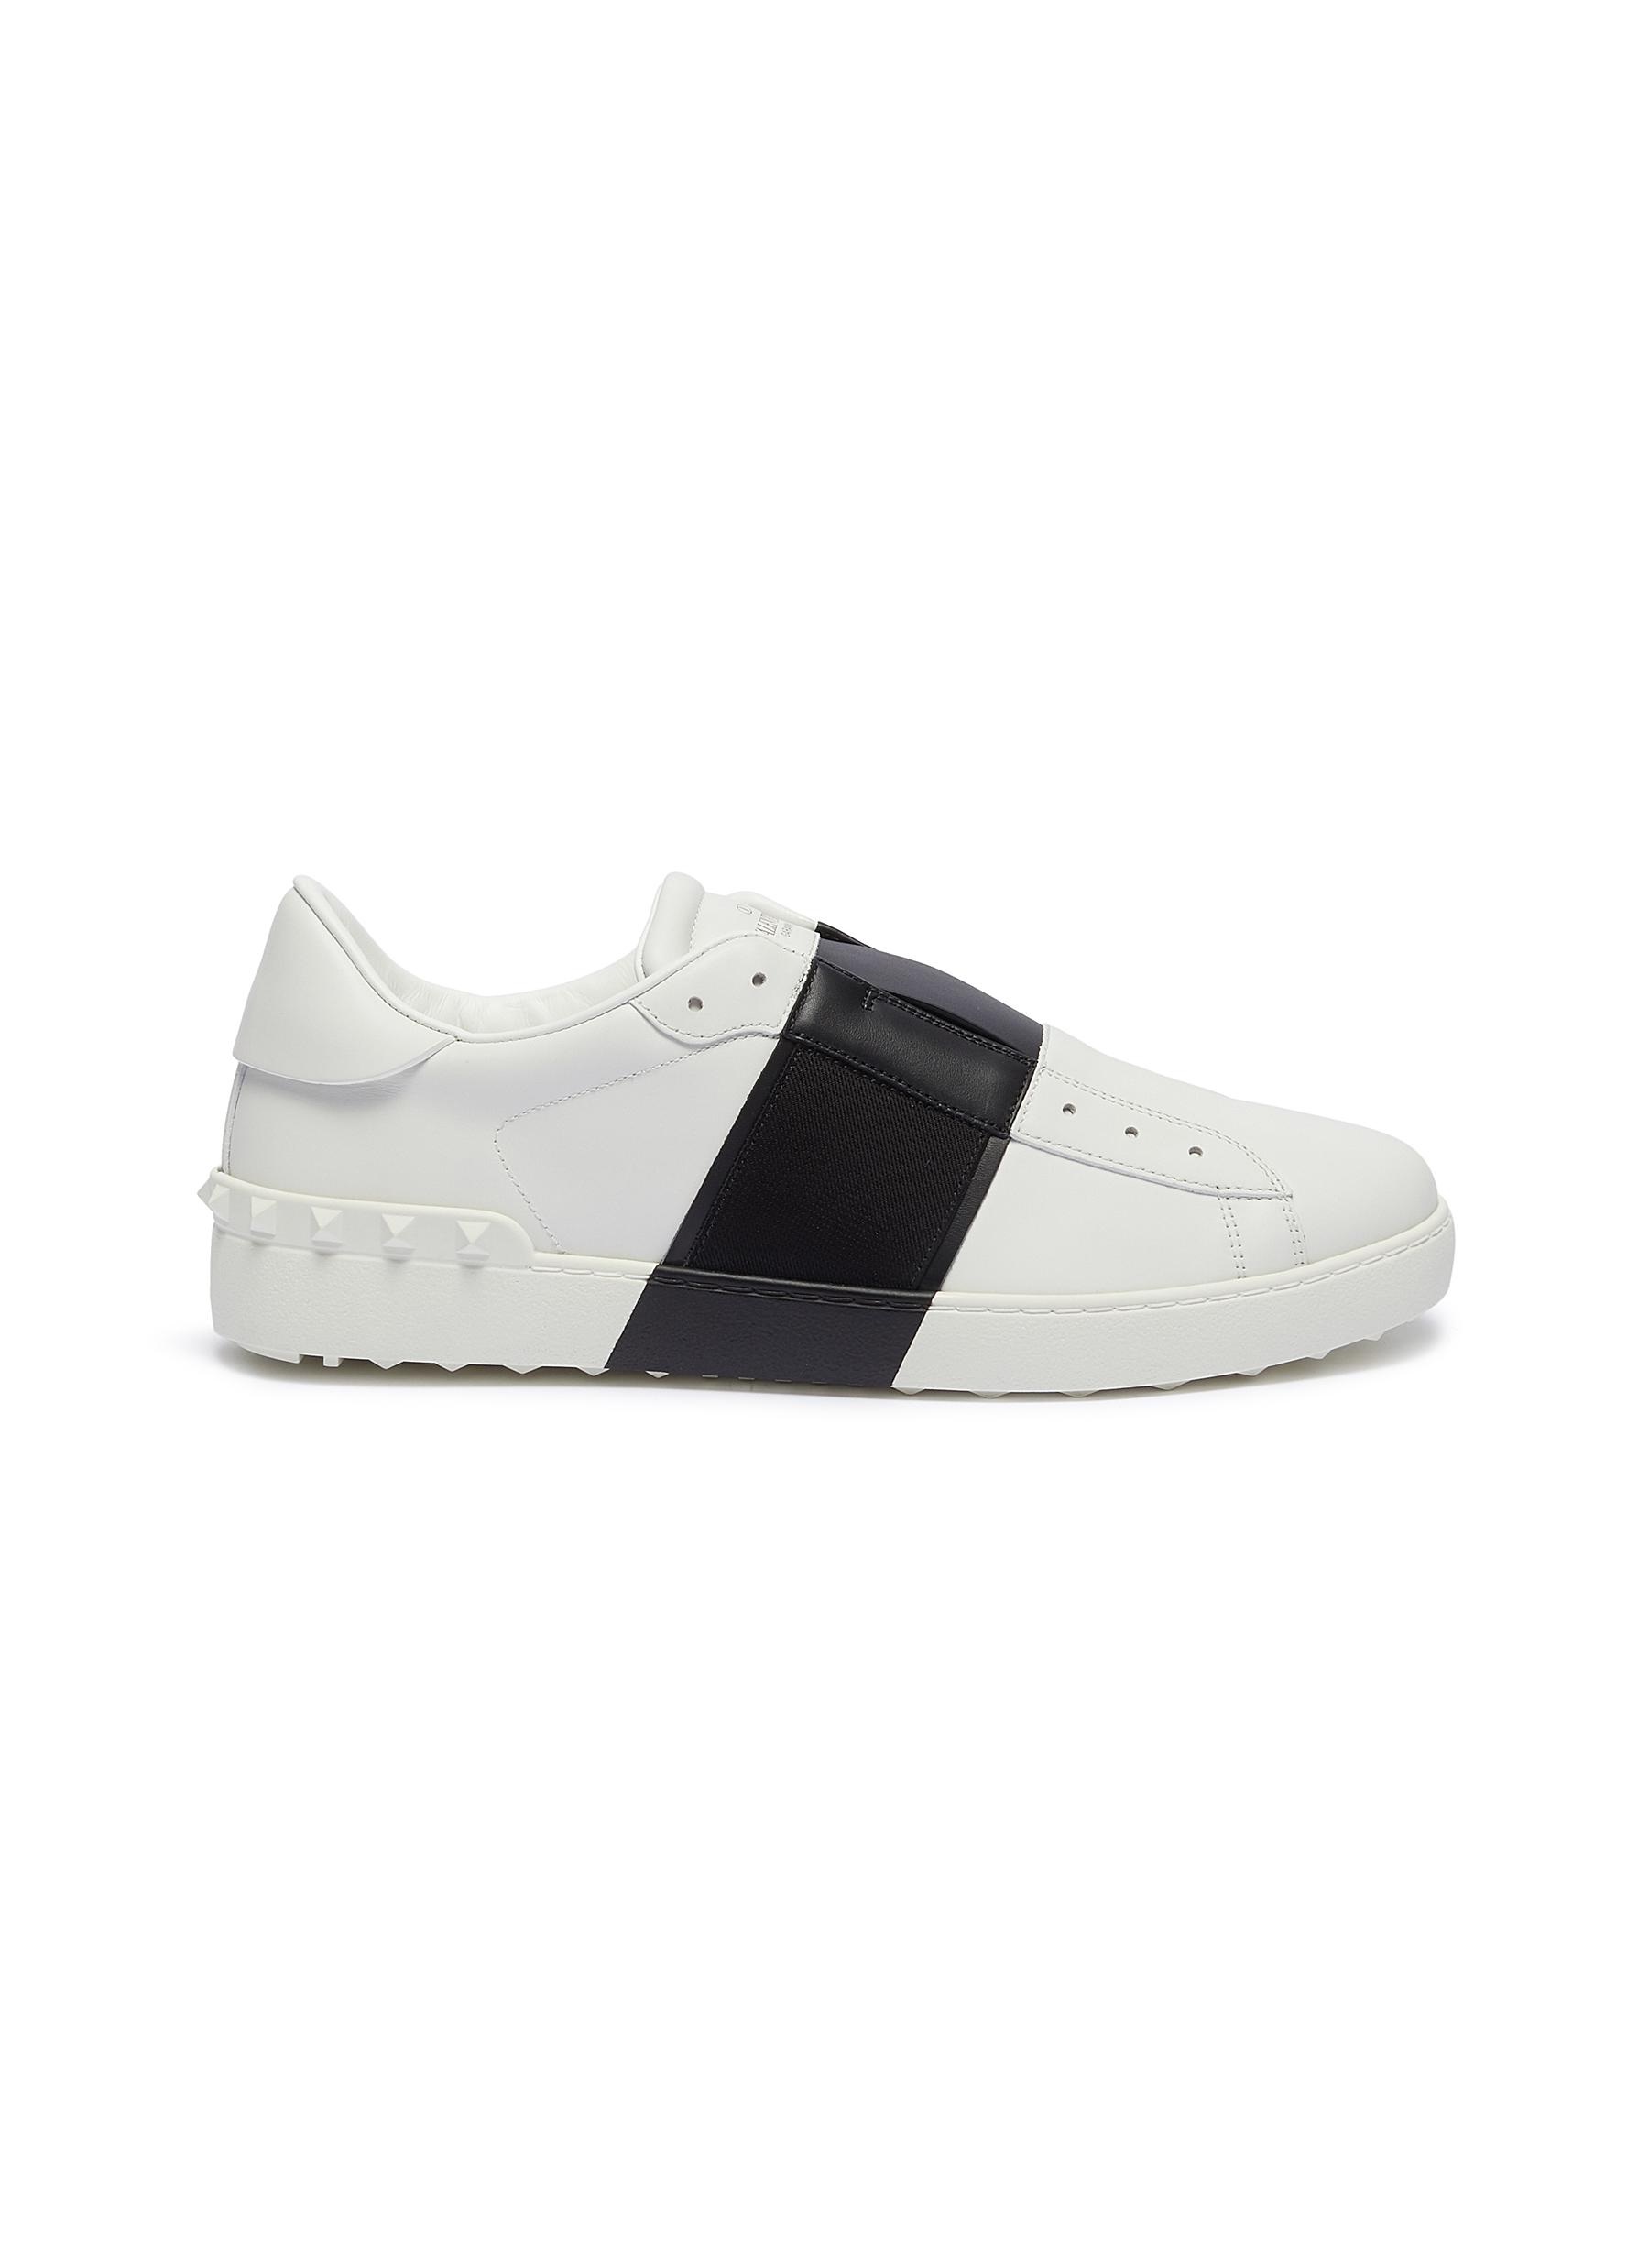 aa6089a5f7ab Main View - Click To Enlarge - Valentino - Rockstud colourblock leather slip-on  sneakers